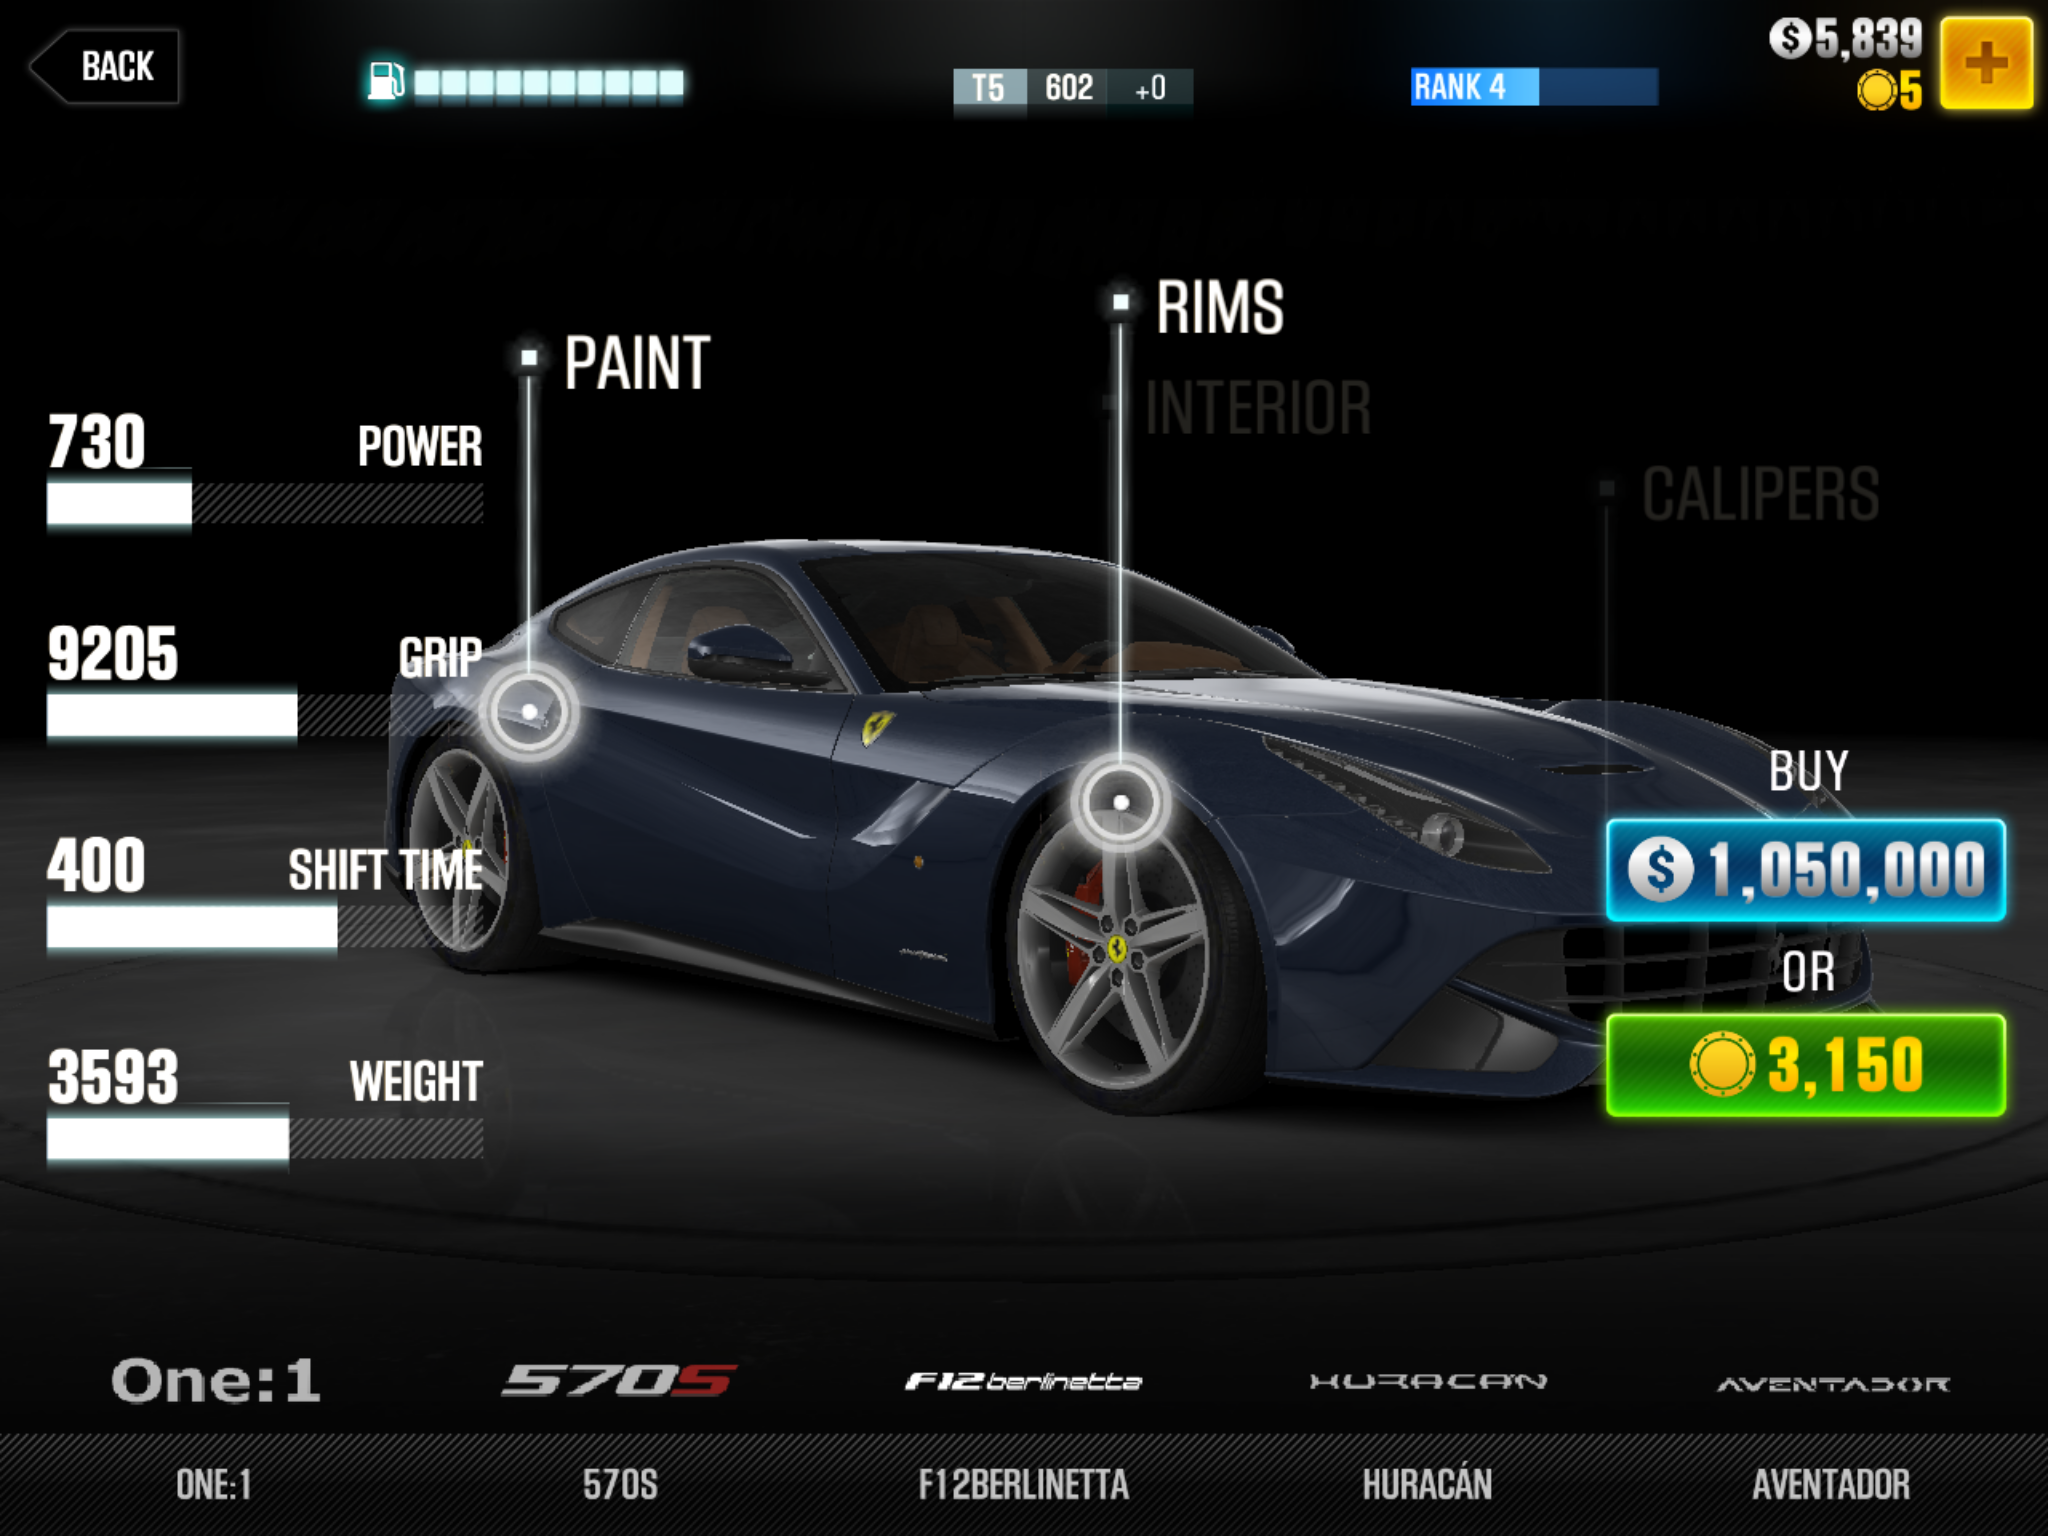 Buying all of the cars in CSR Racing 2 will cost you more